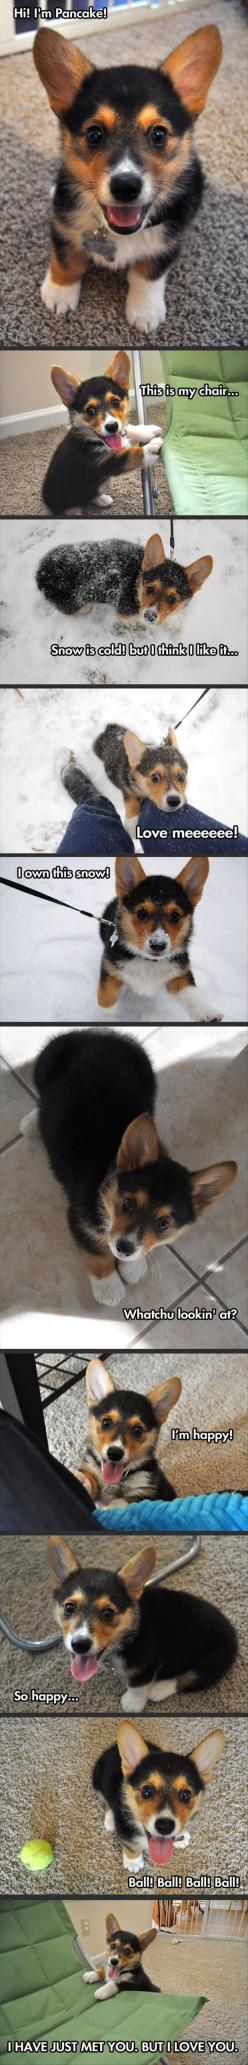 Cutest puppy ever almost.: Corgis, Cuteness Overload, Happiest Dog, Dogs, Funny Pictures, Puppy, Animal, Pancake